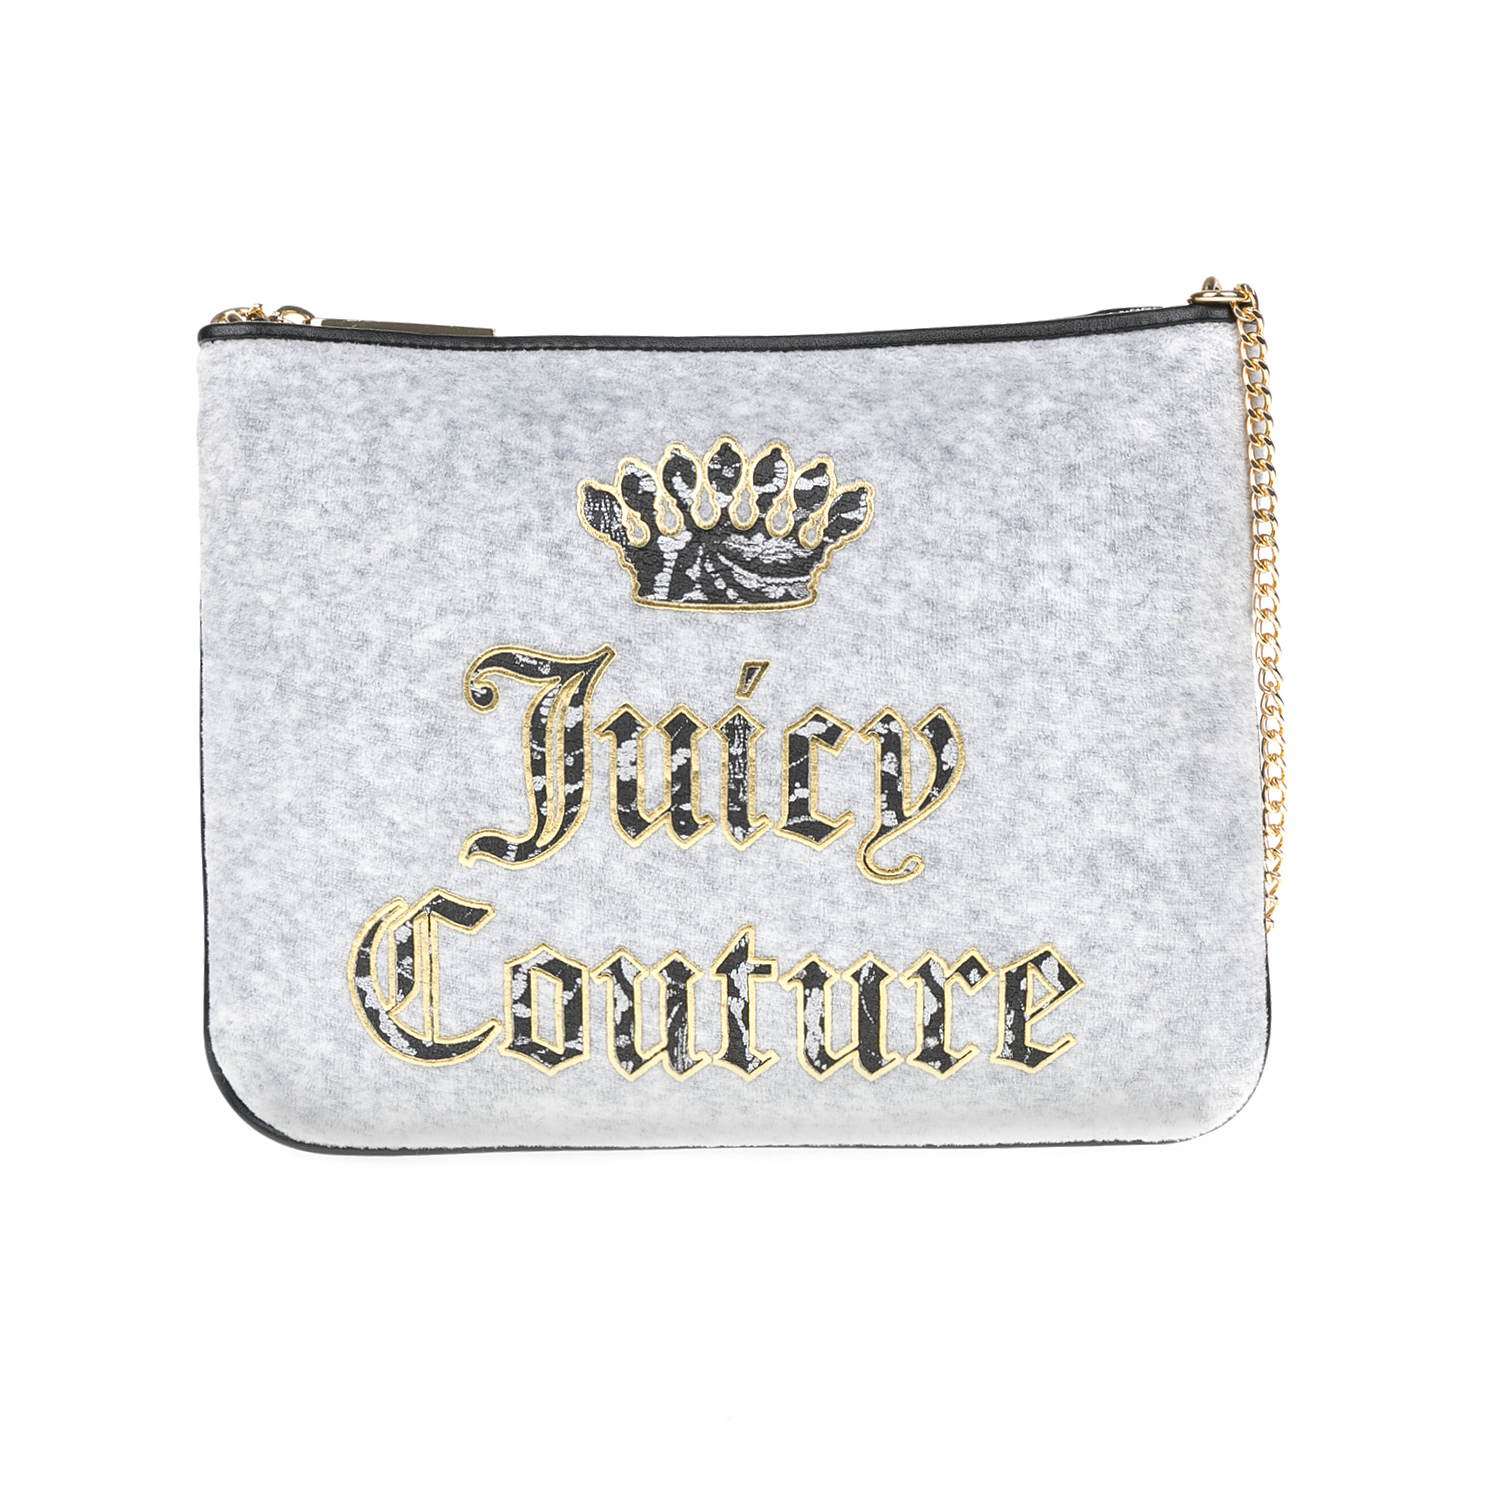 JUICY COUTURE - Γυναικεία τσάντα JUICY COUTURE γκρι